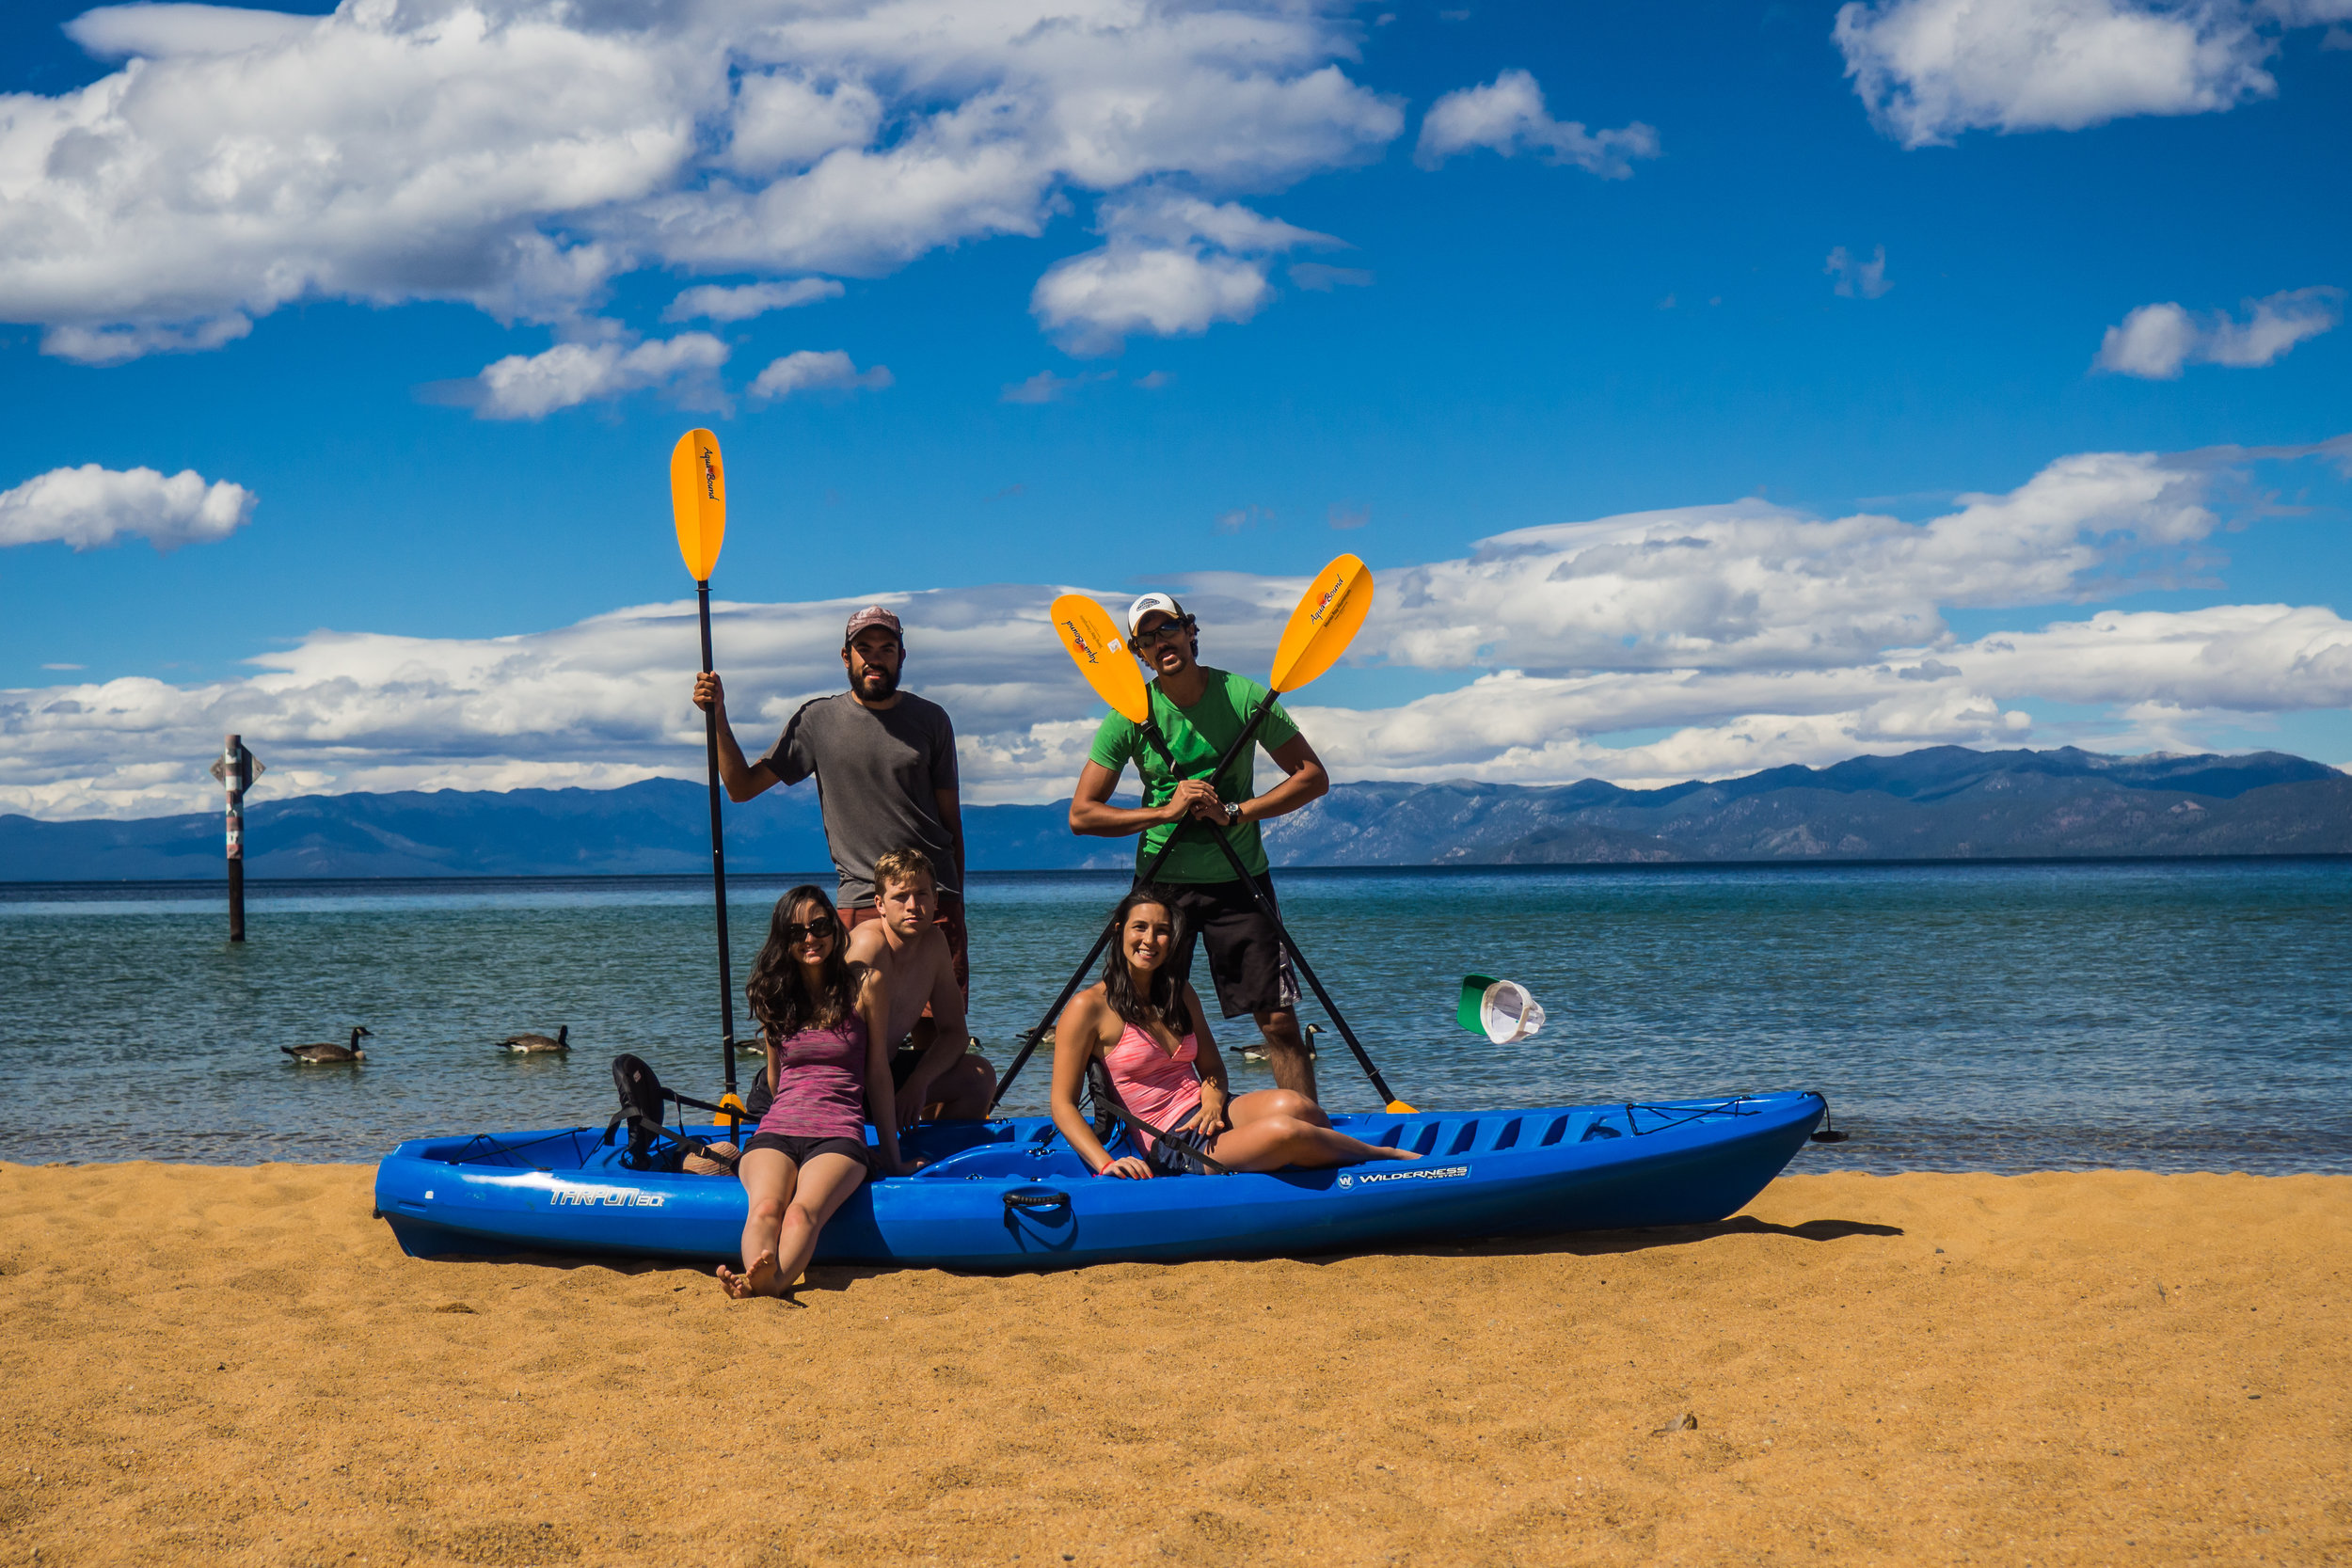 A few friends dropped by to visit me on my rest day in Lake Tahoe